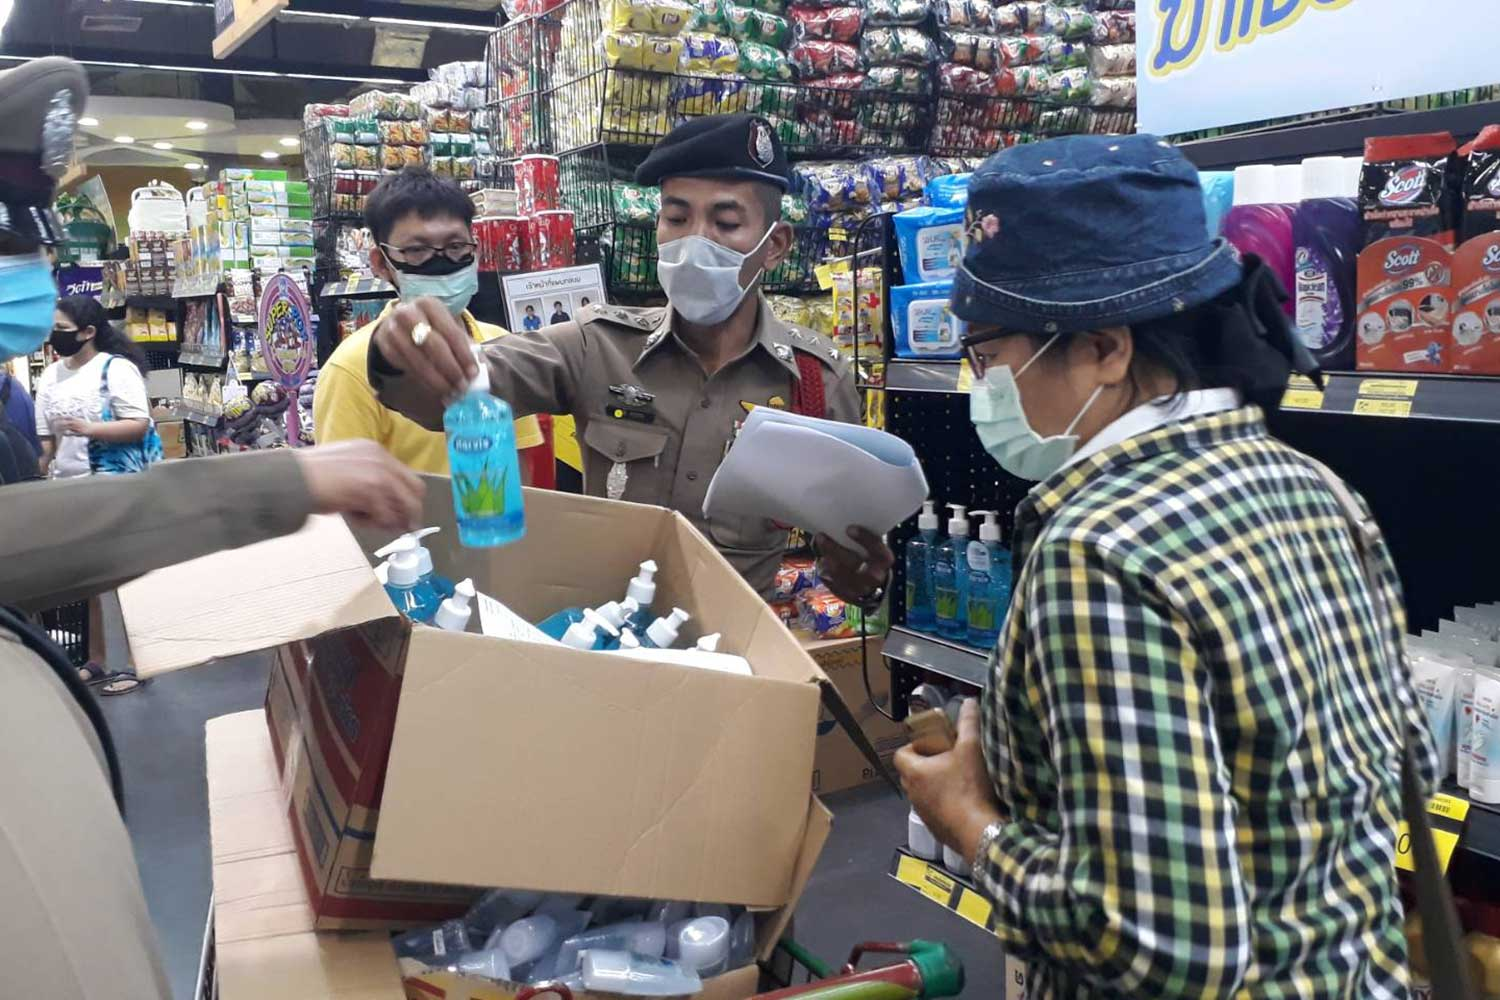 A police officer looks at a bottle of alcohol gel at Phuket Grocery in Phuket during the  raid on Thursday morning. Many products suspected of being sold at inflated prices were seized and the store manager held for questioning. (Photo: Achadtaya Chuenniran)